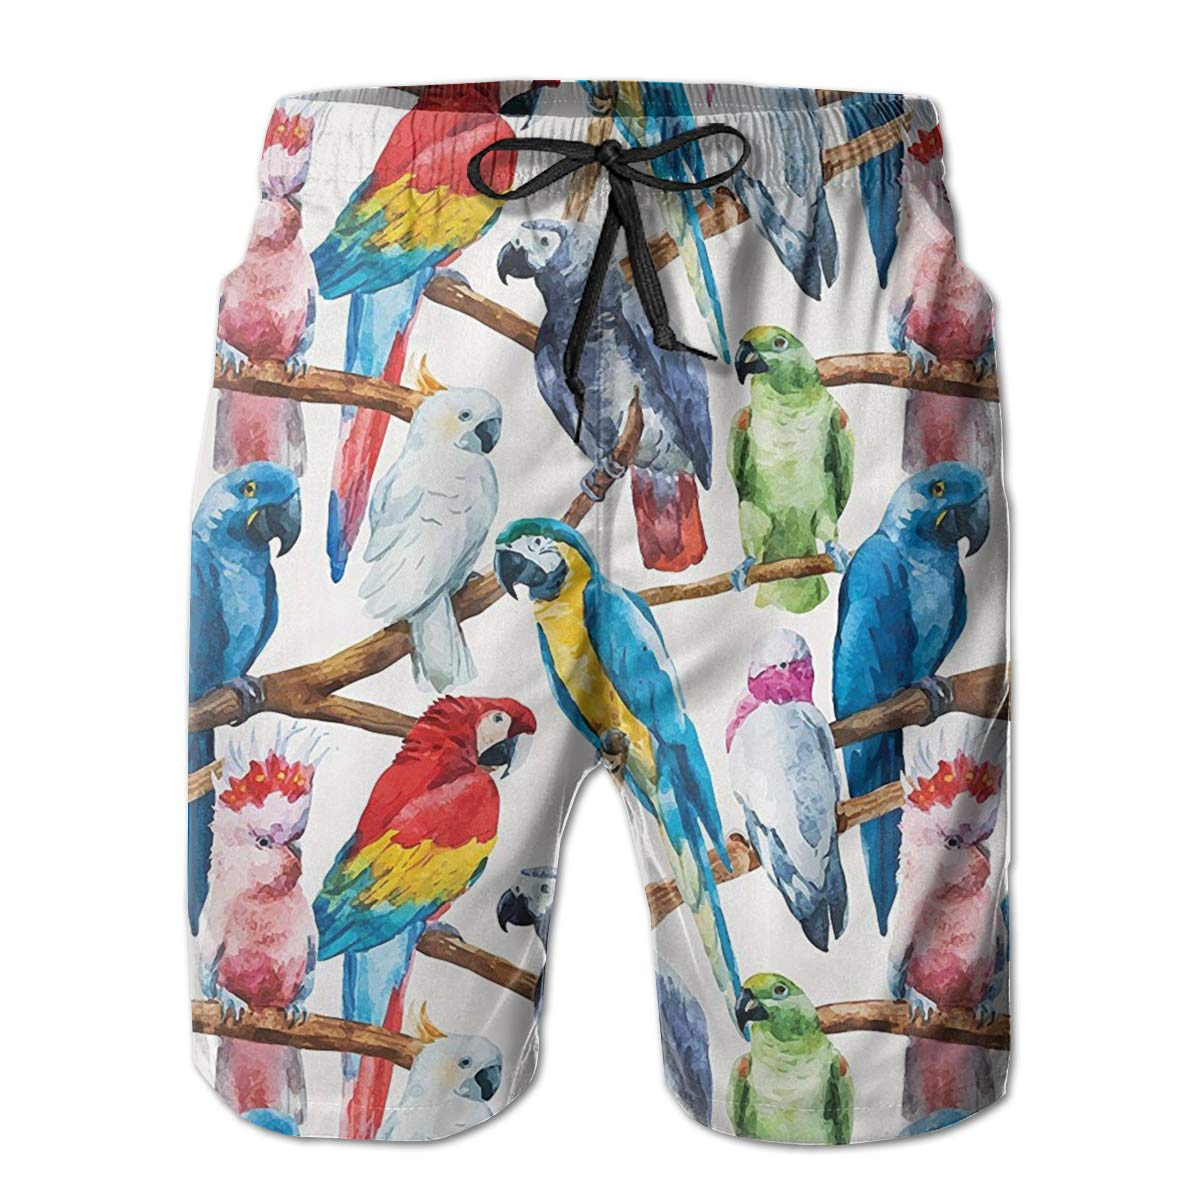 Bilybily Colorful Parrots On Tree Branches Mens Swim Trunks Quick Dry Board Shorts with Pockets Summer Beach Shorts